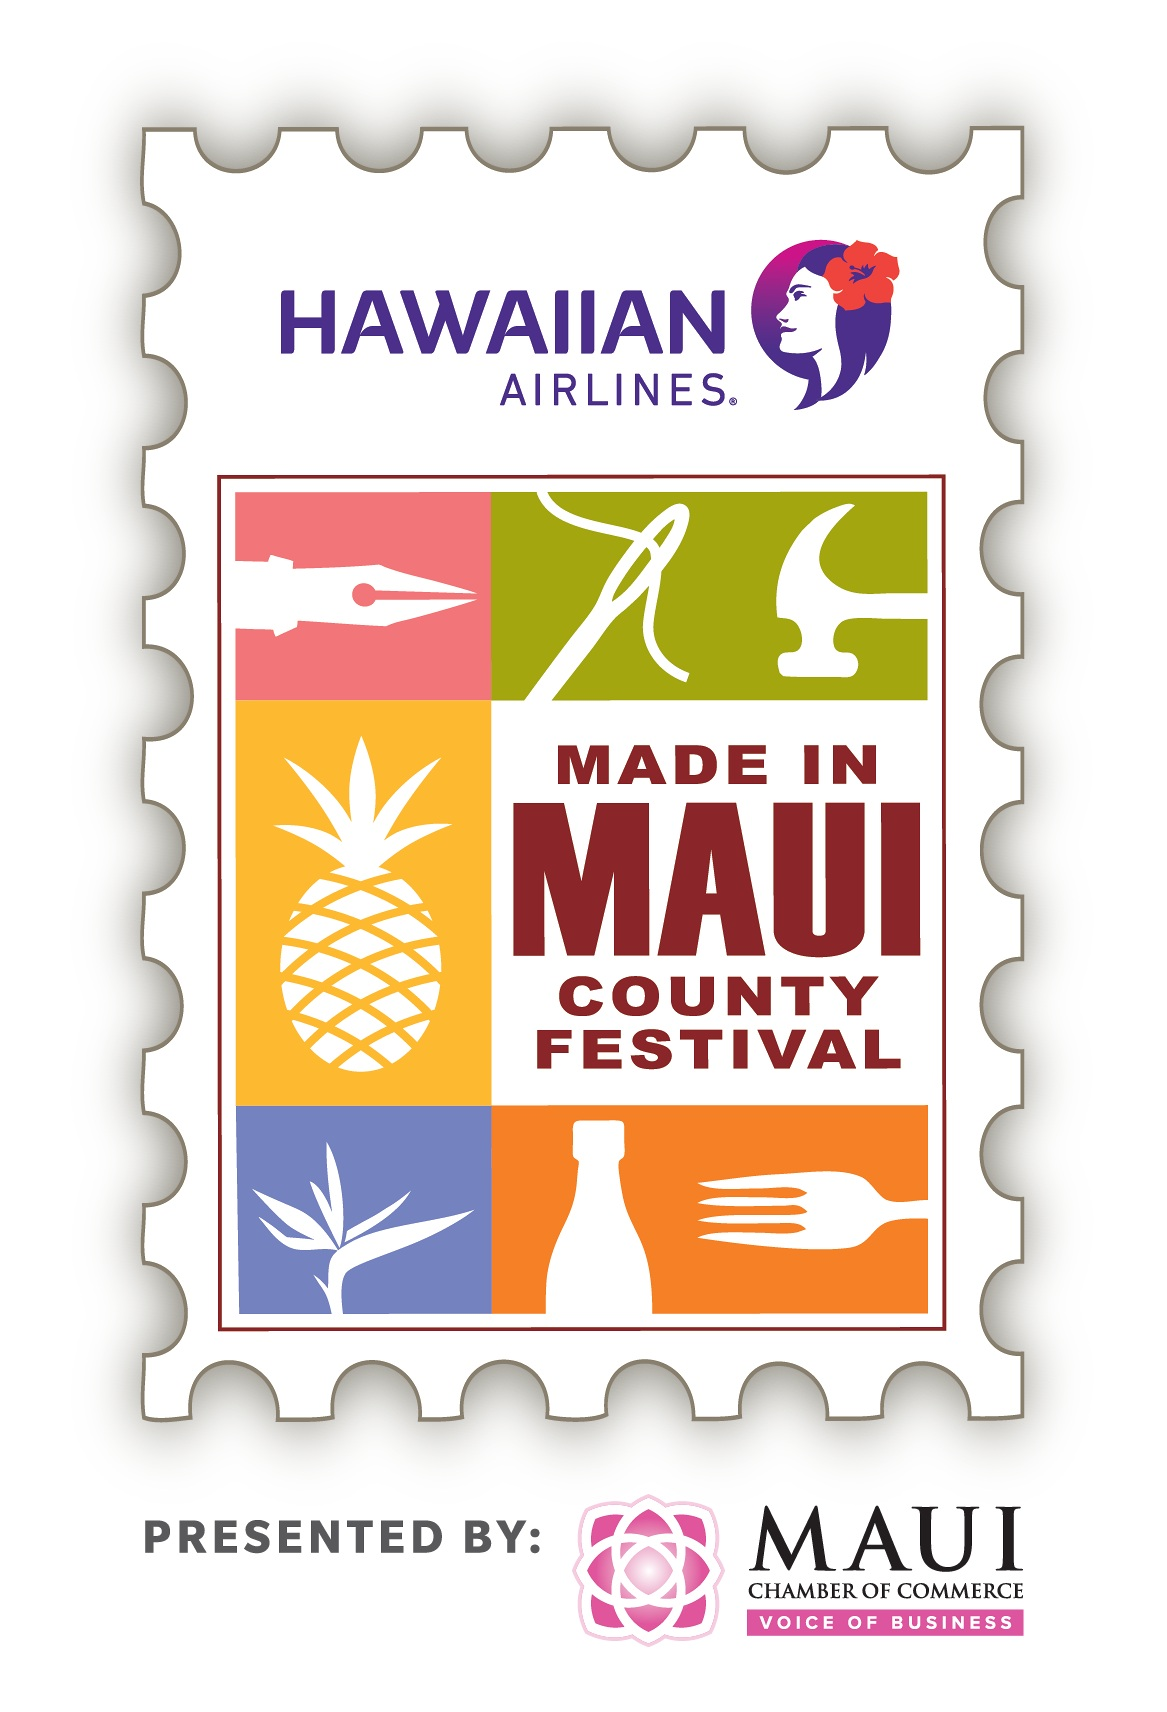 Made in Maui County Festival